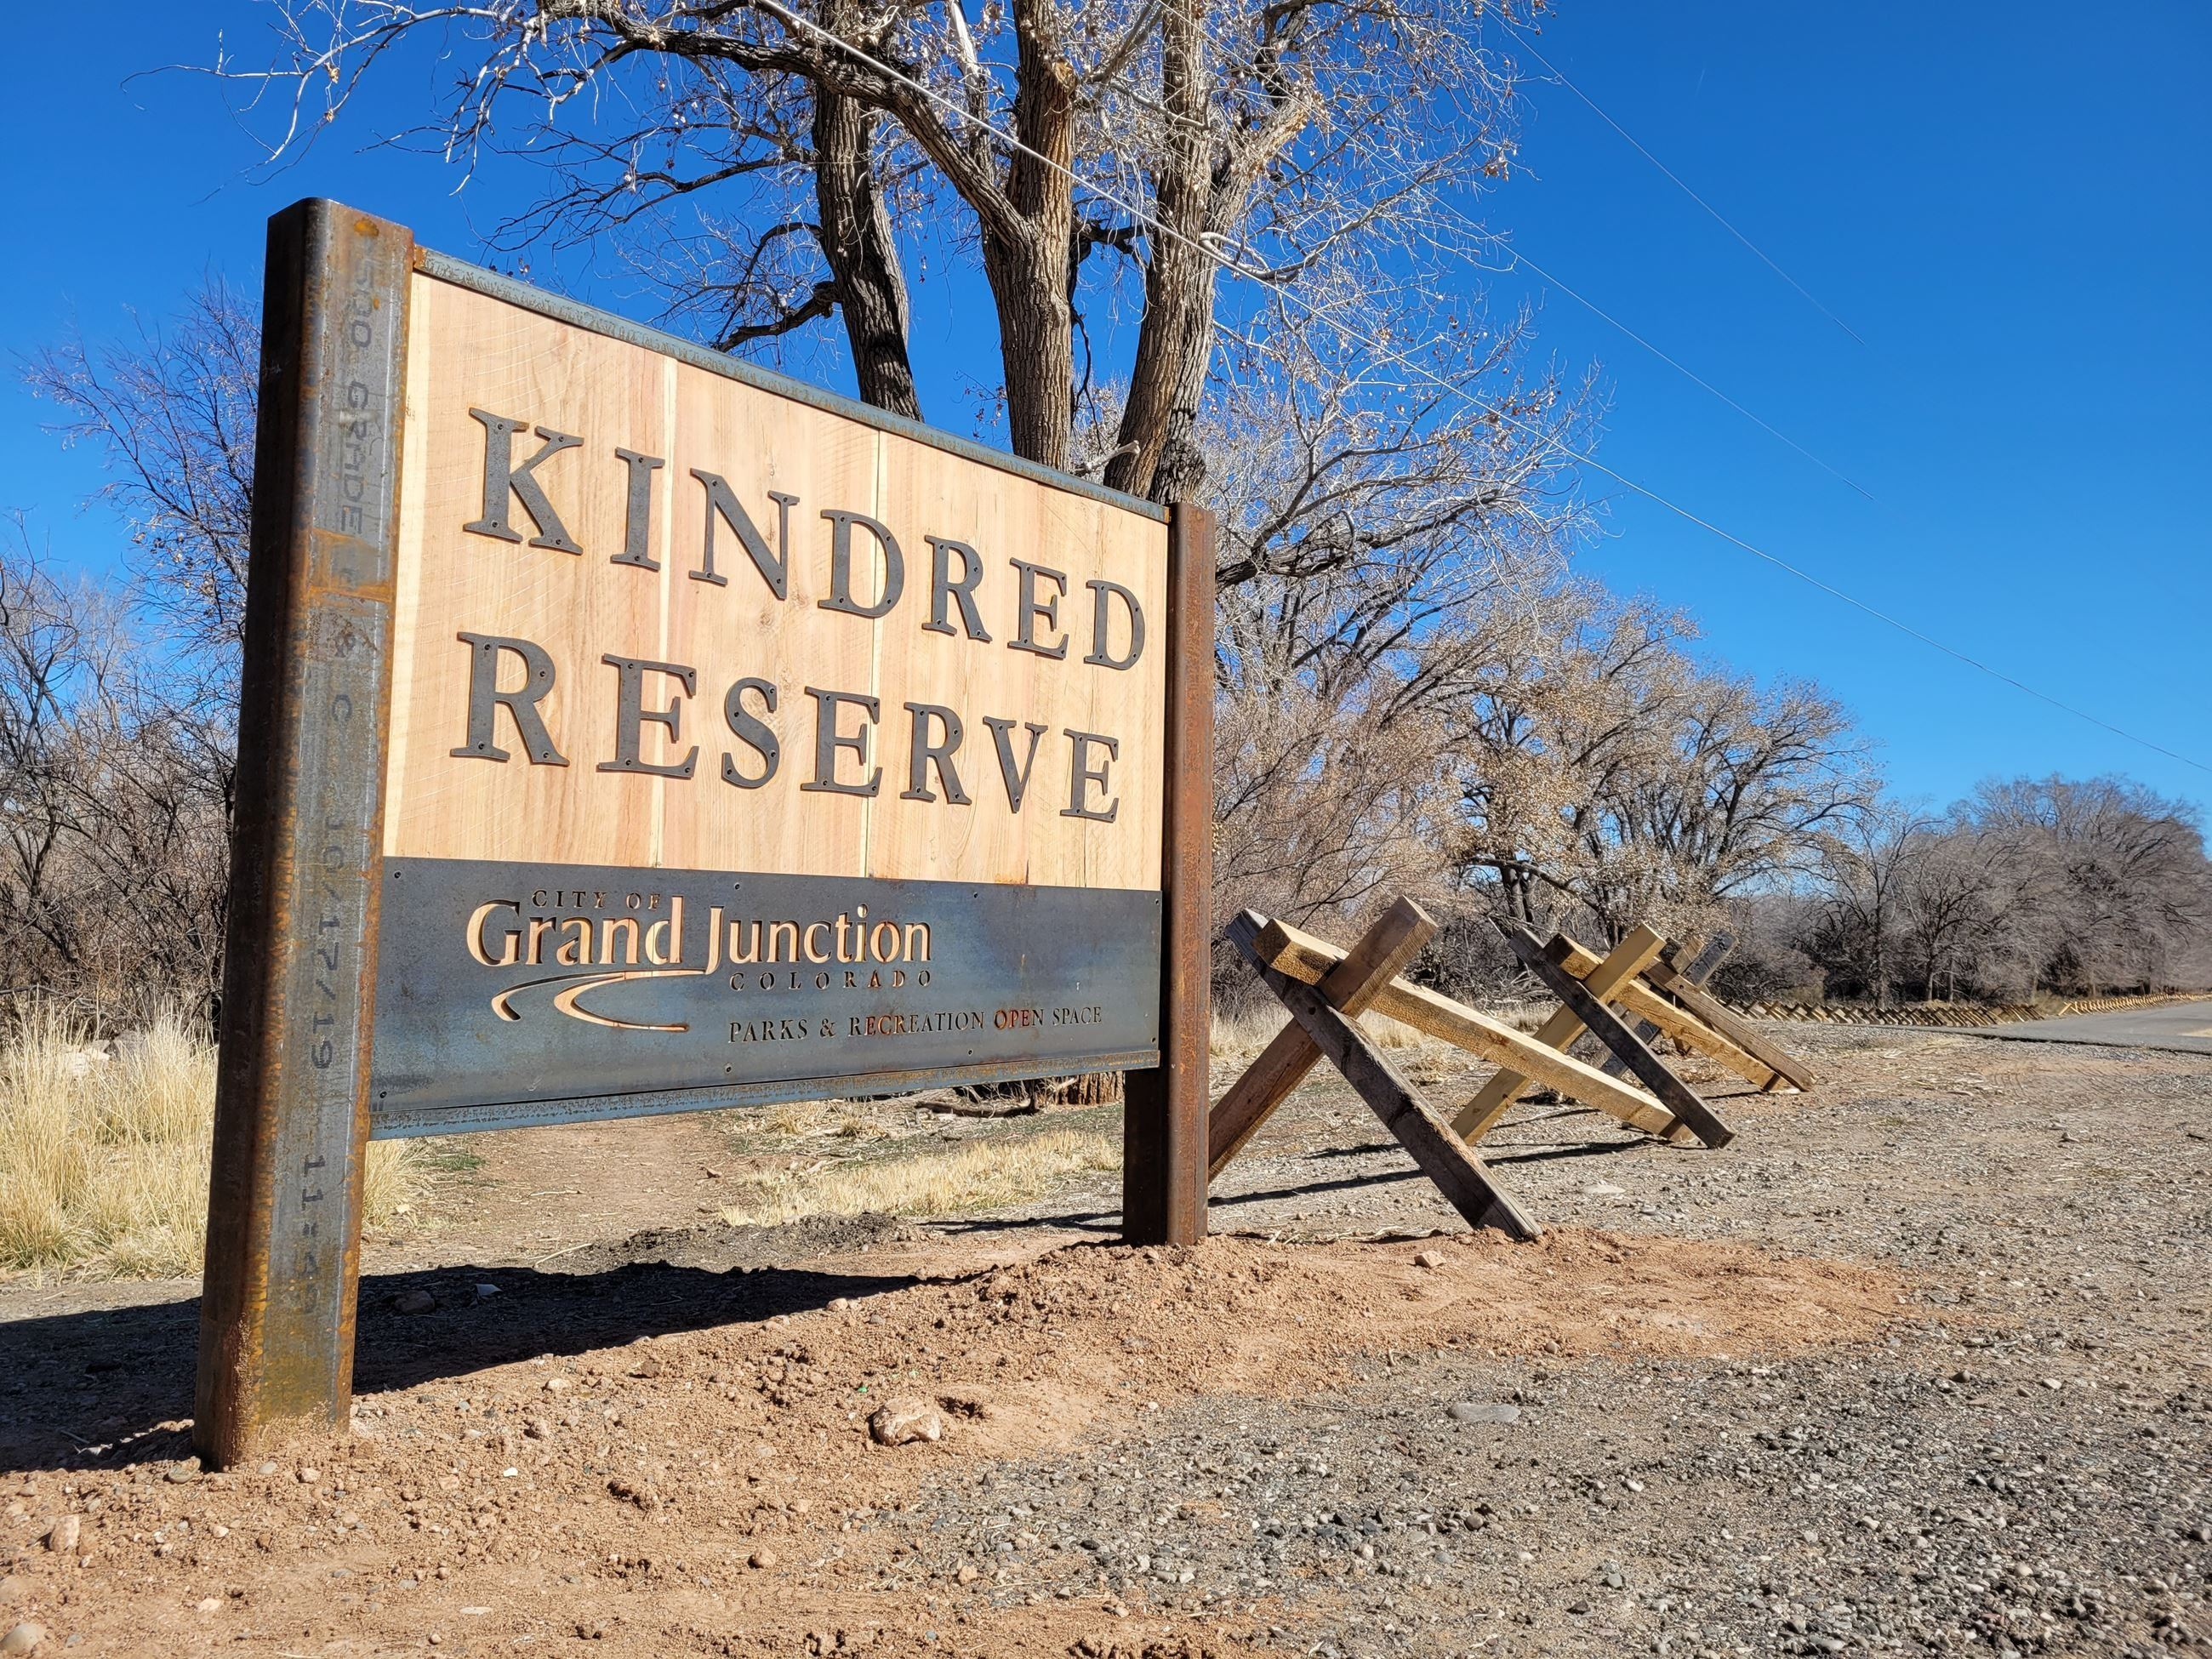 Kindred Reserve Open Space